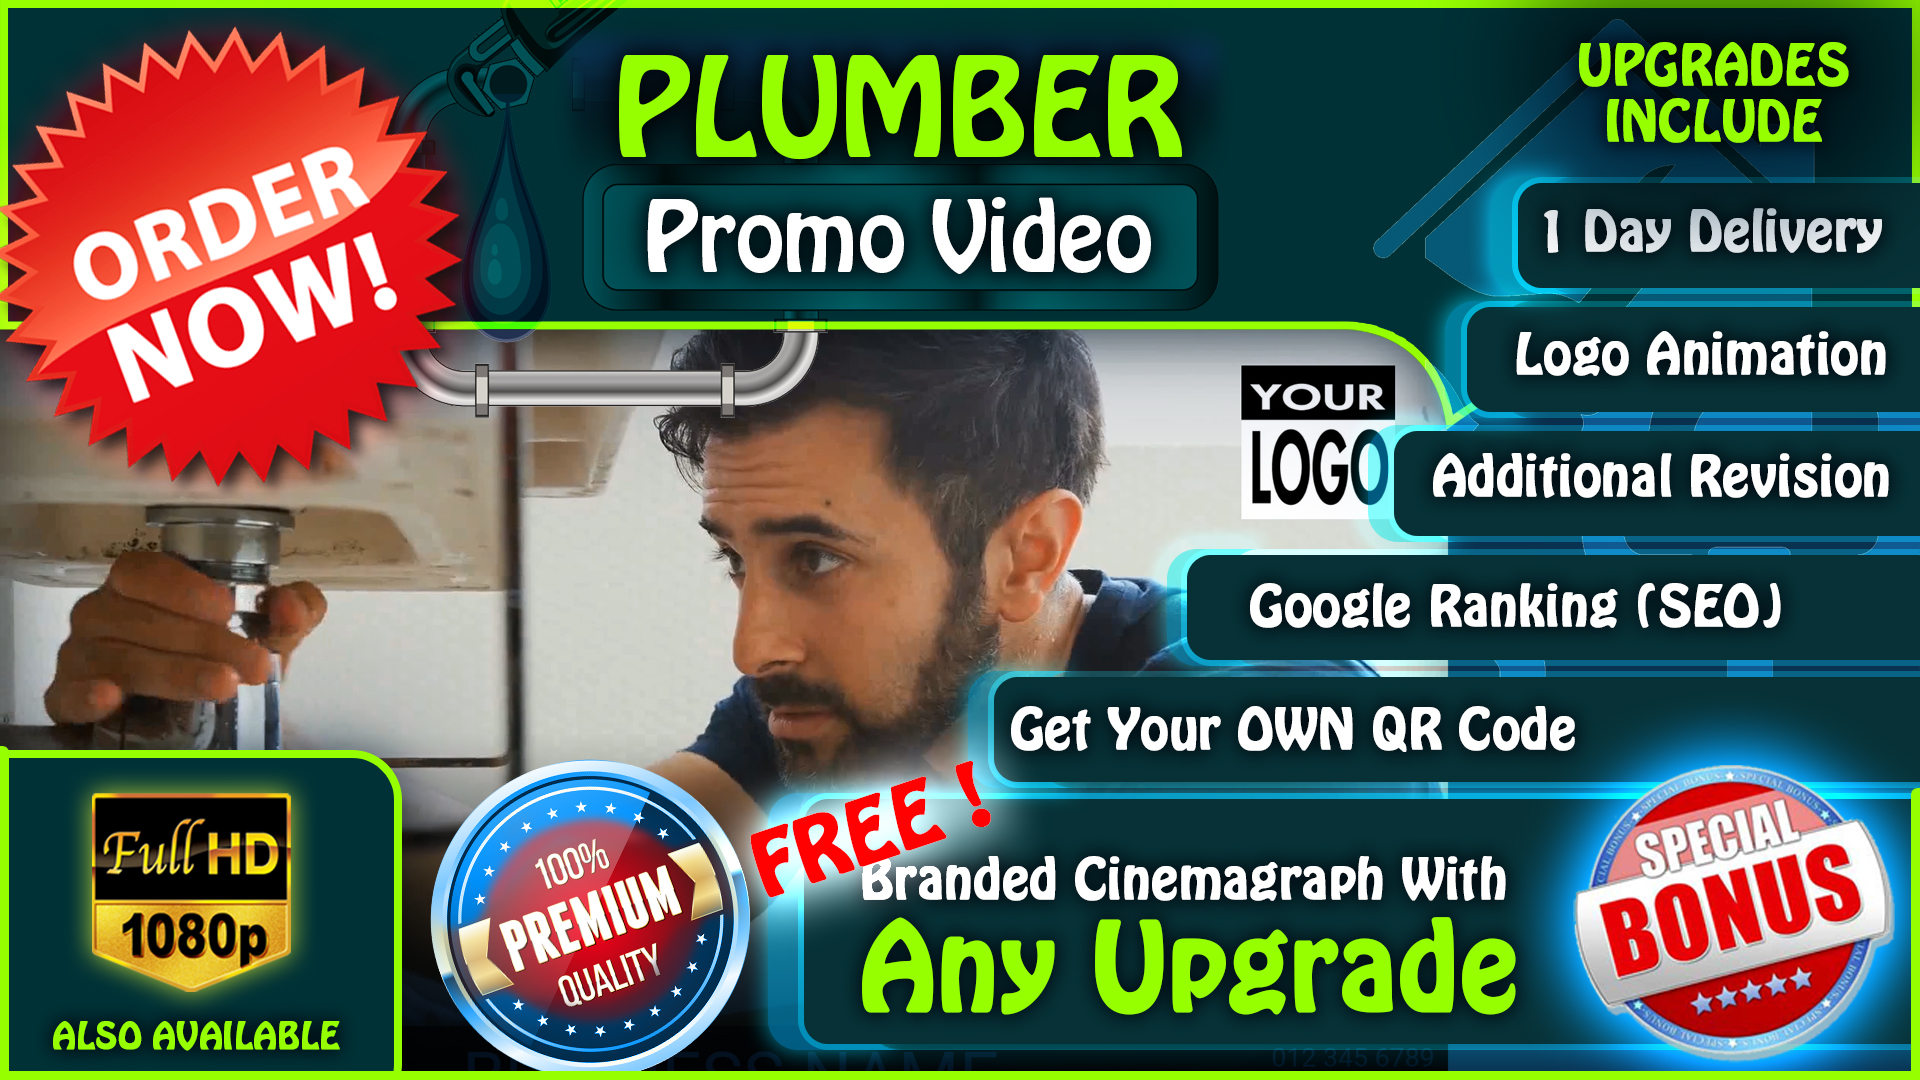 I will create this plumber spokesperson video, FiverrBox